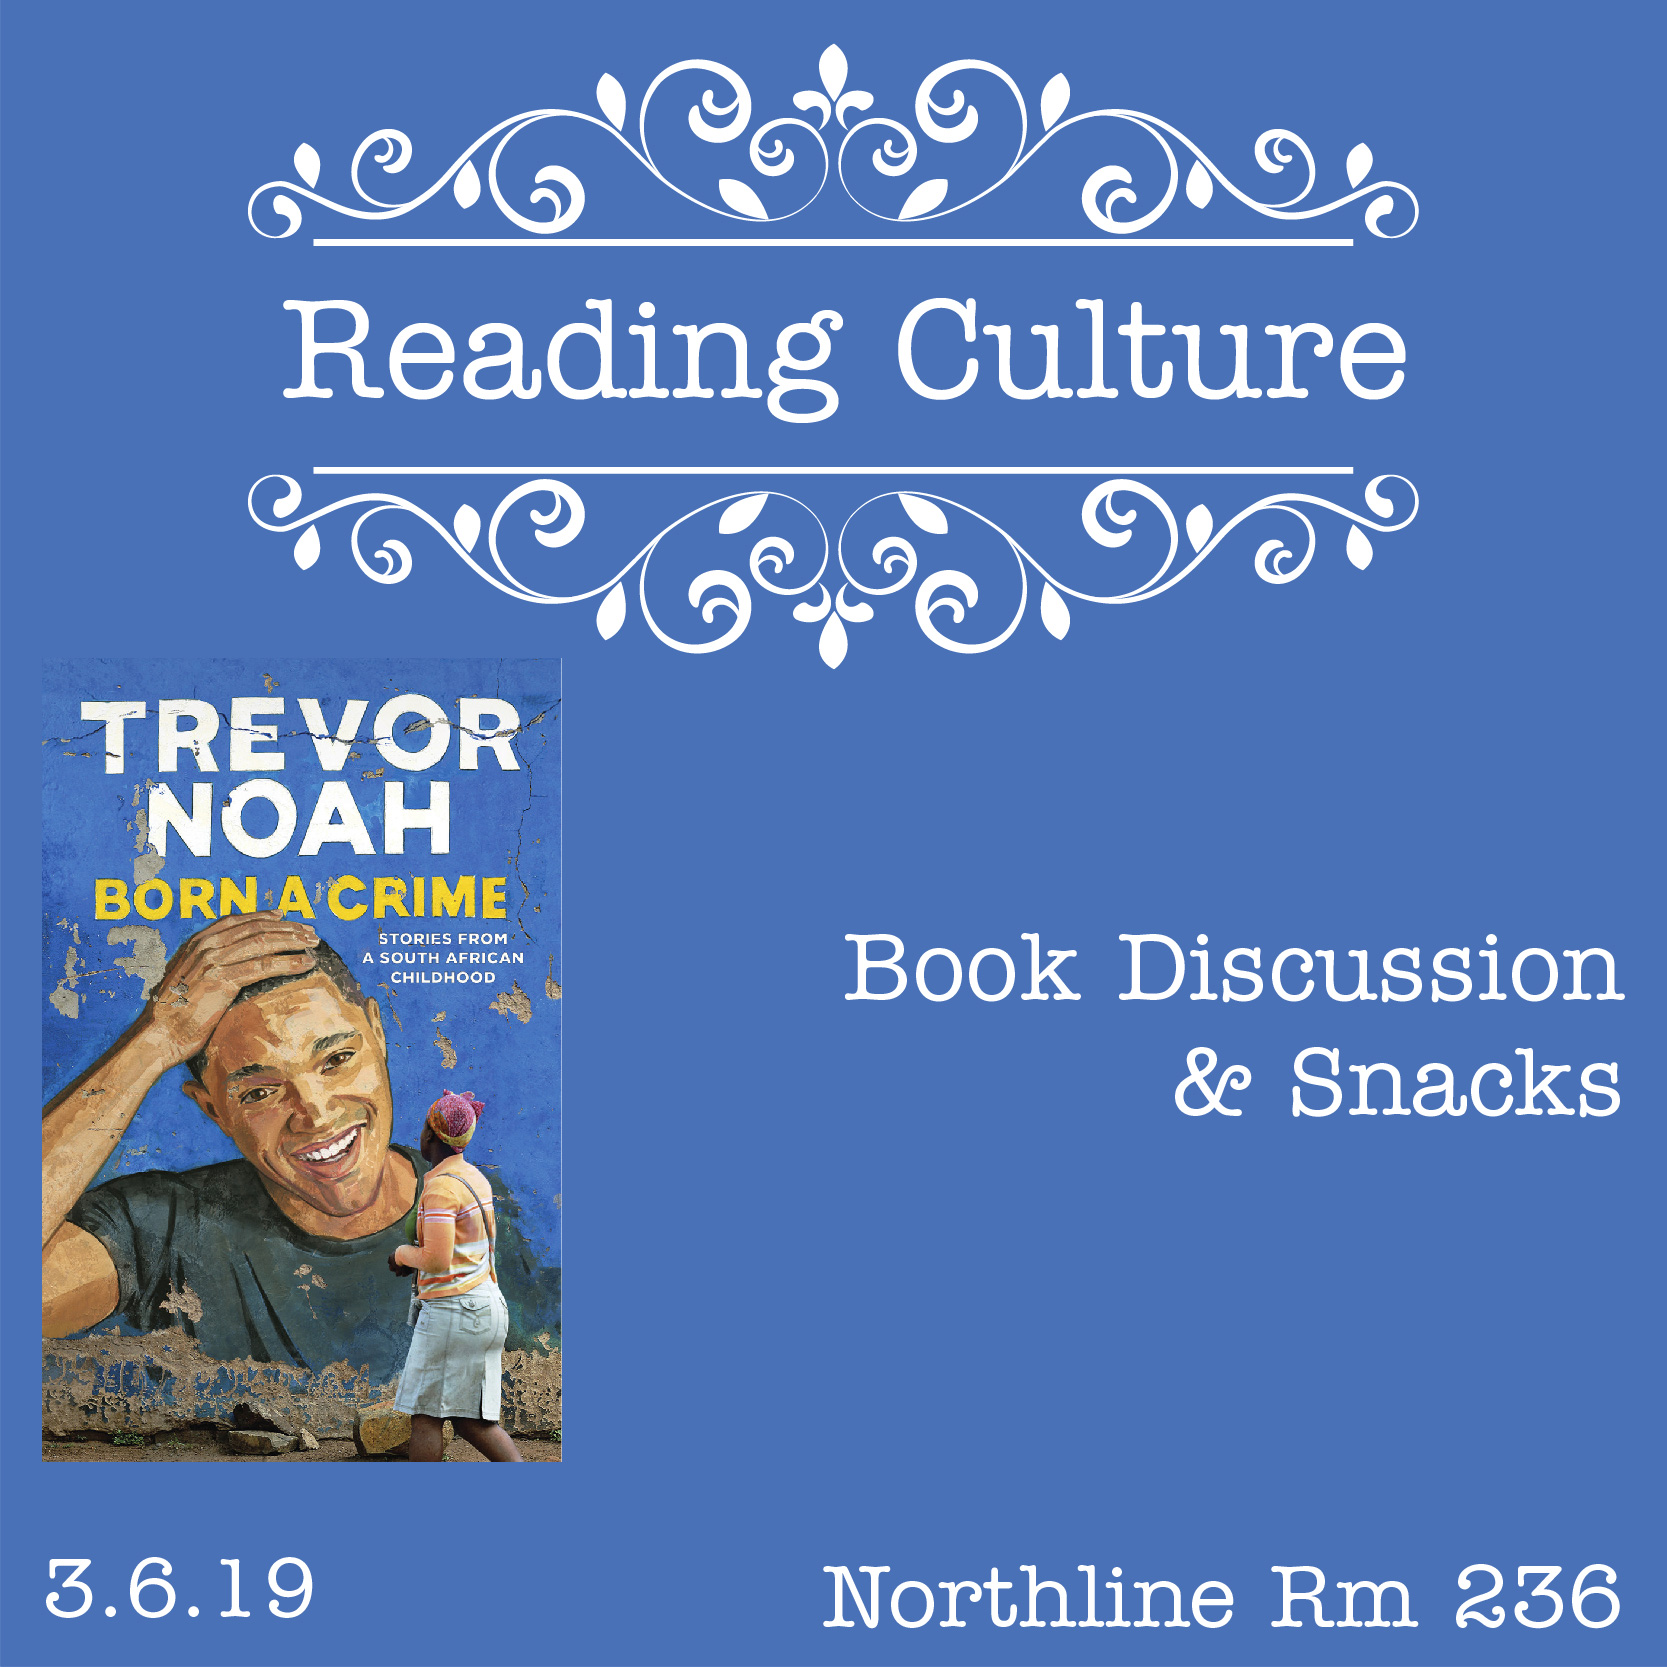 [NL] Reading Culture: Book Discussion & Snacks